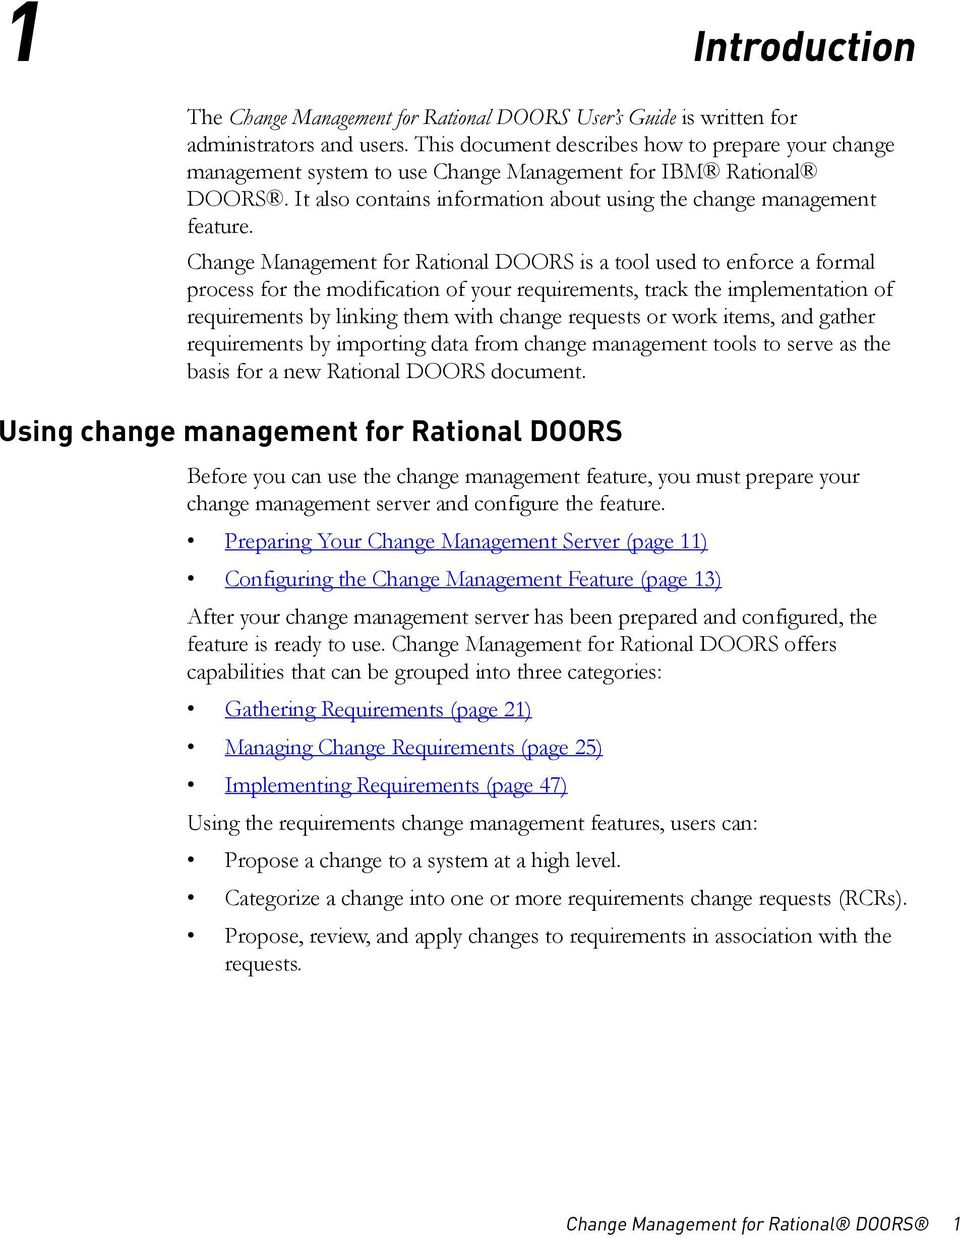 Change Management for Rational DOORS is a tool used to enforce a formal process for the modification of your requirements, track the implementation of requirements by linking them with change